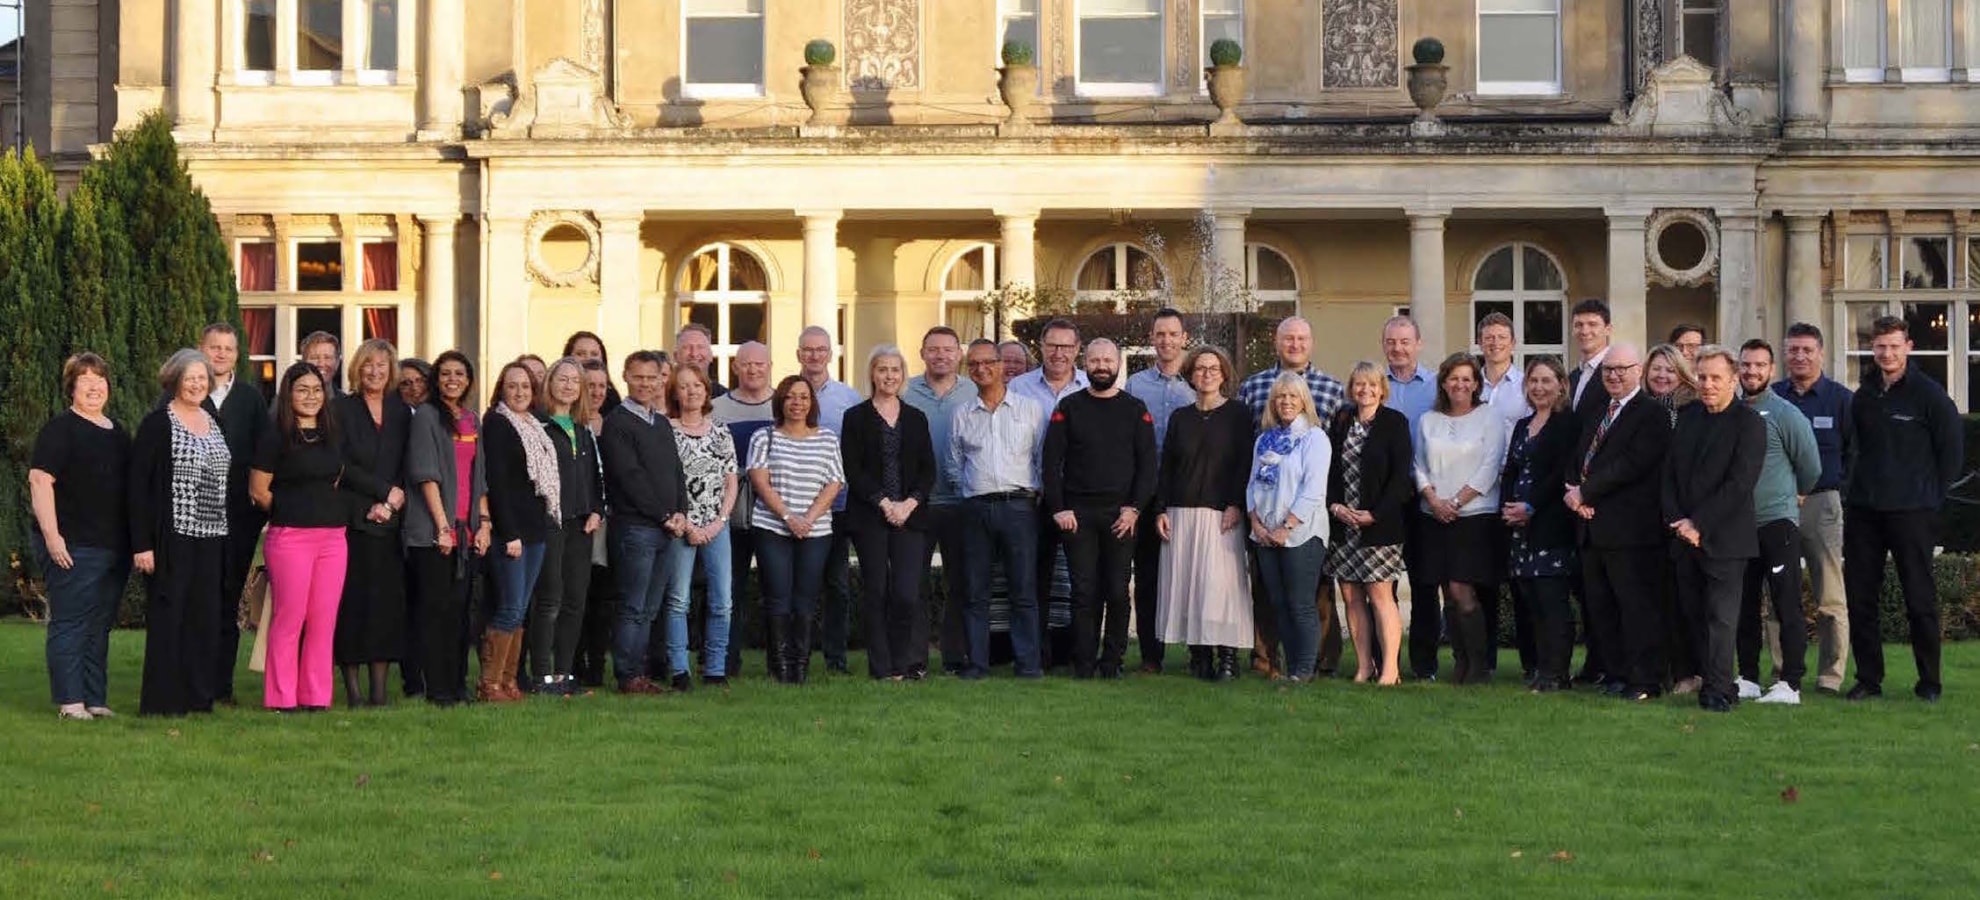 group photograph of clinicians and executives from the UK